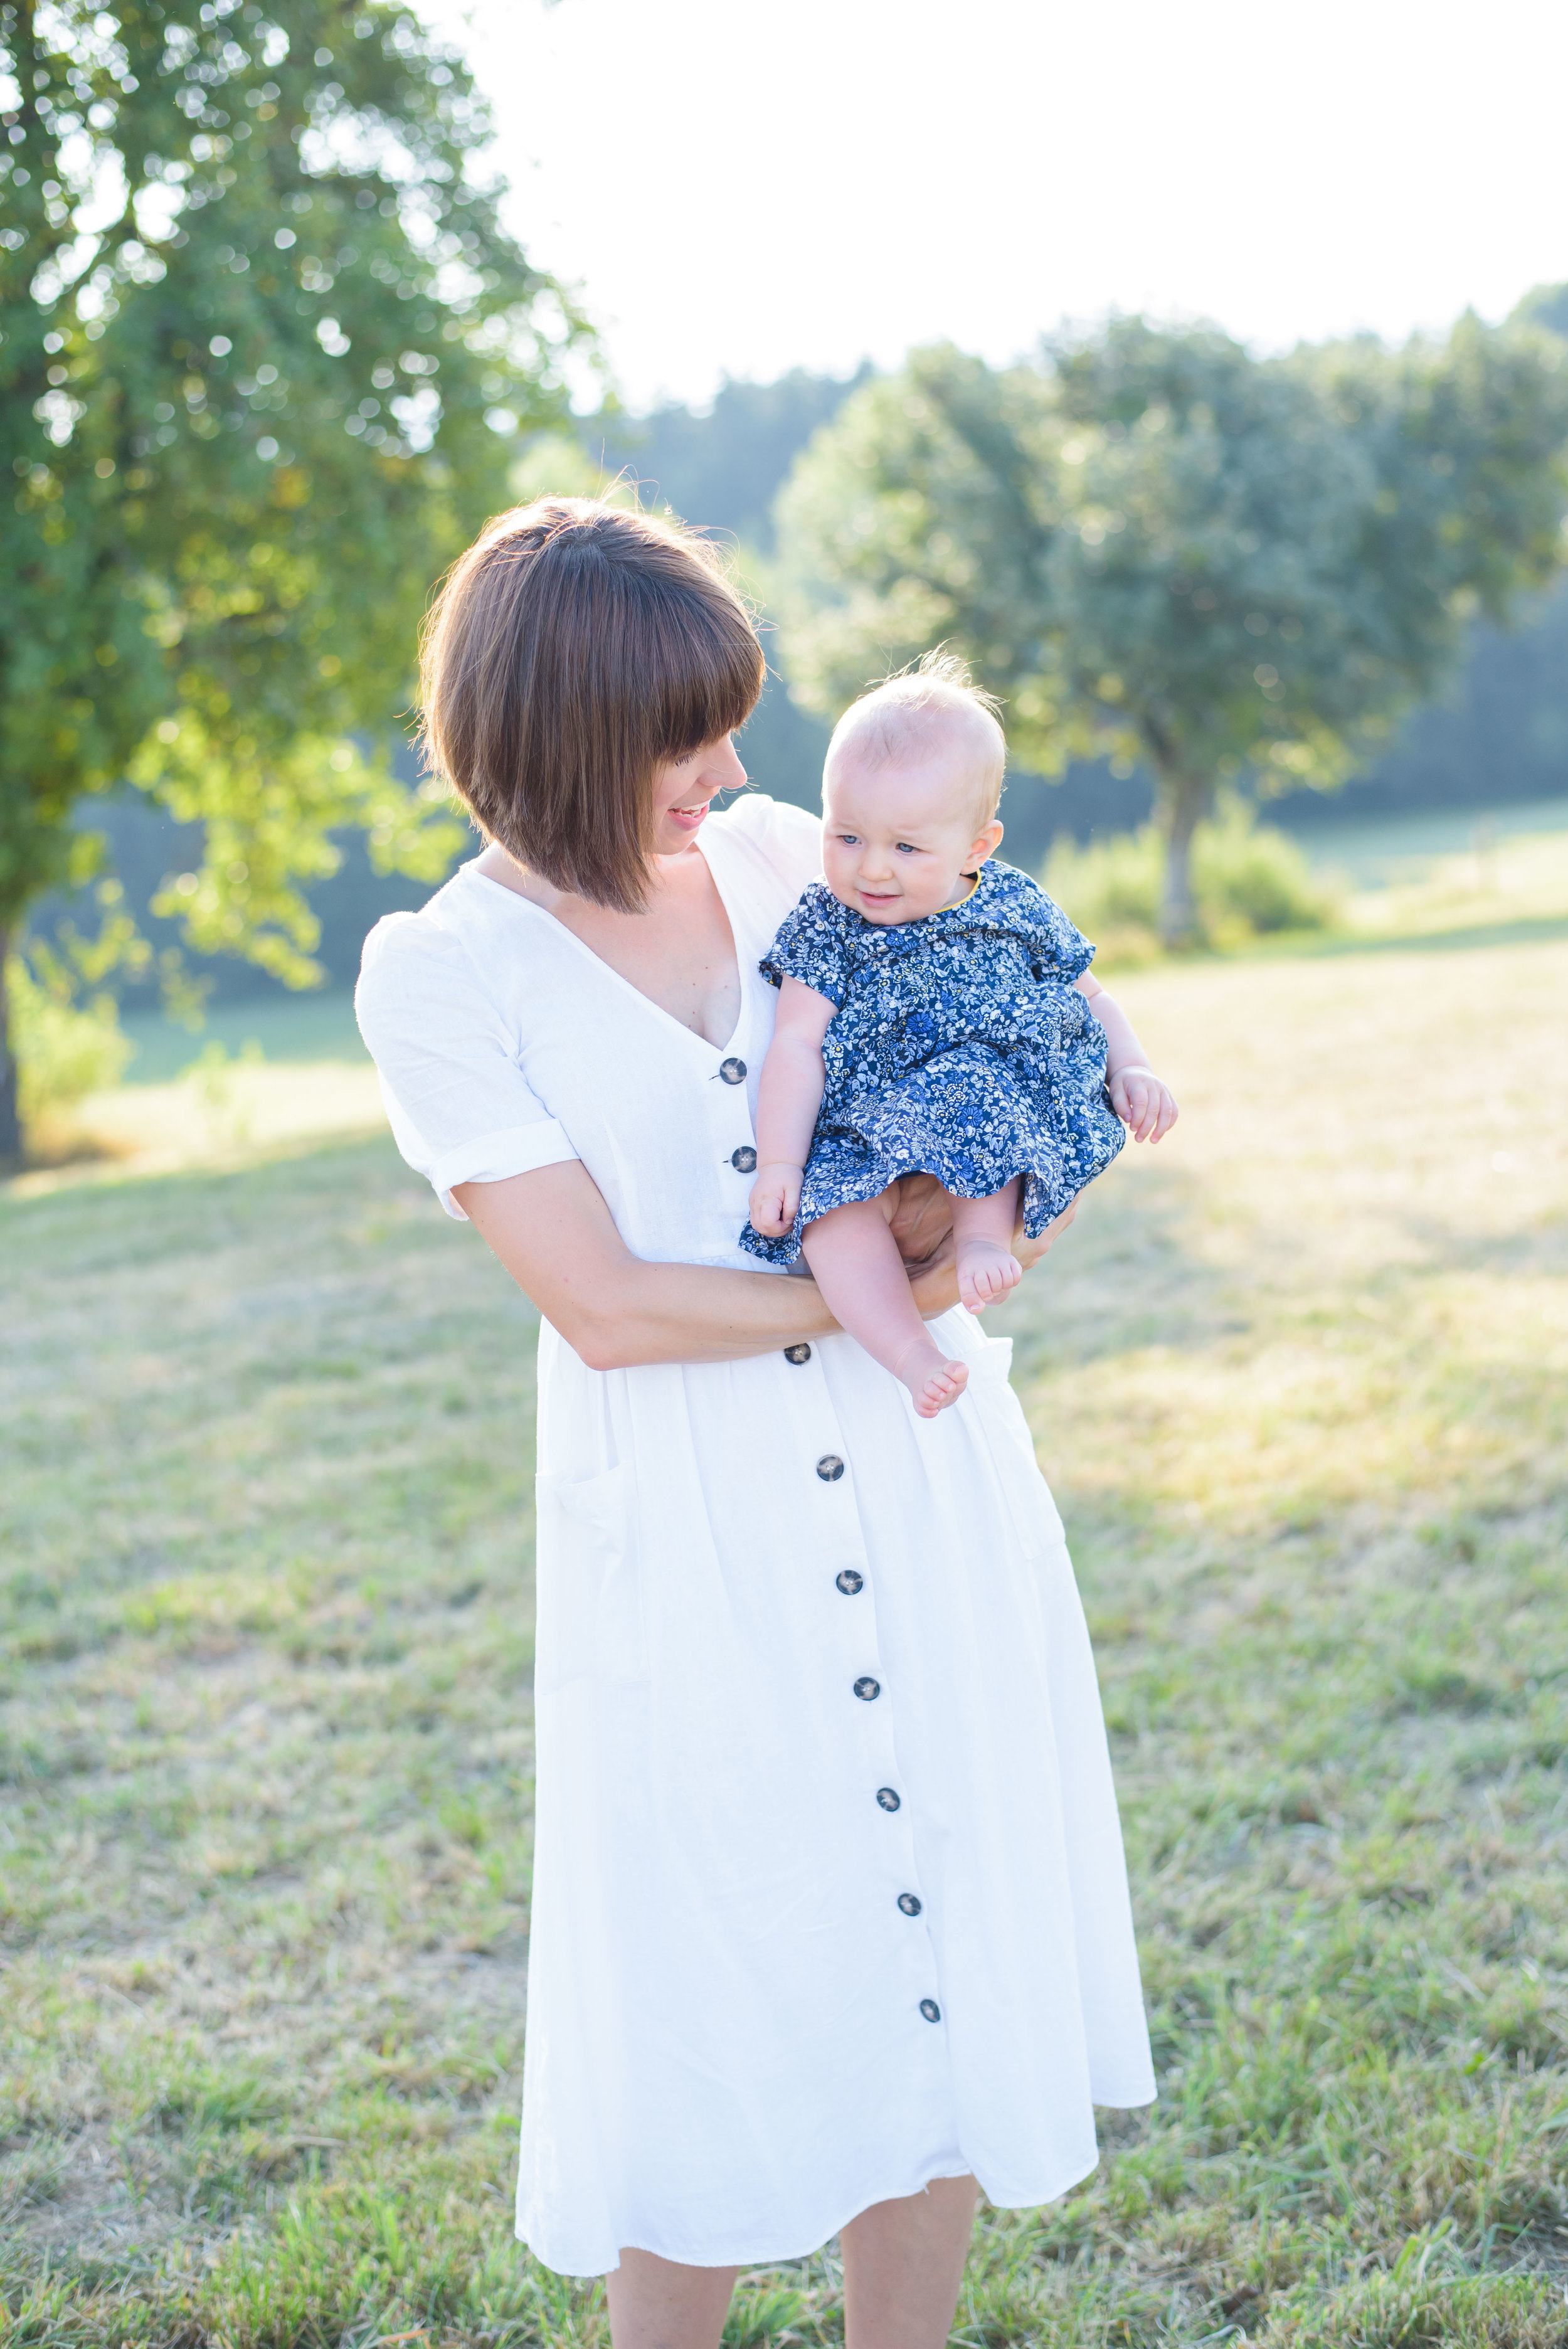 Outdoor baby photographer